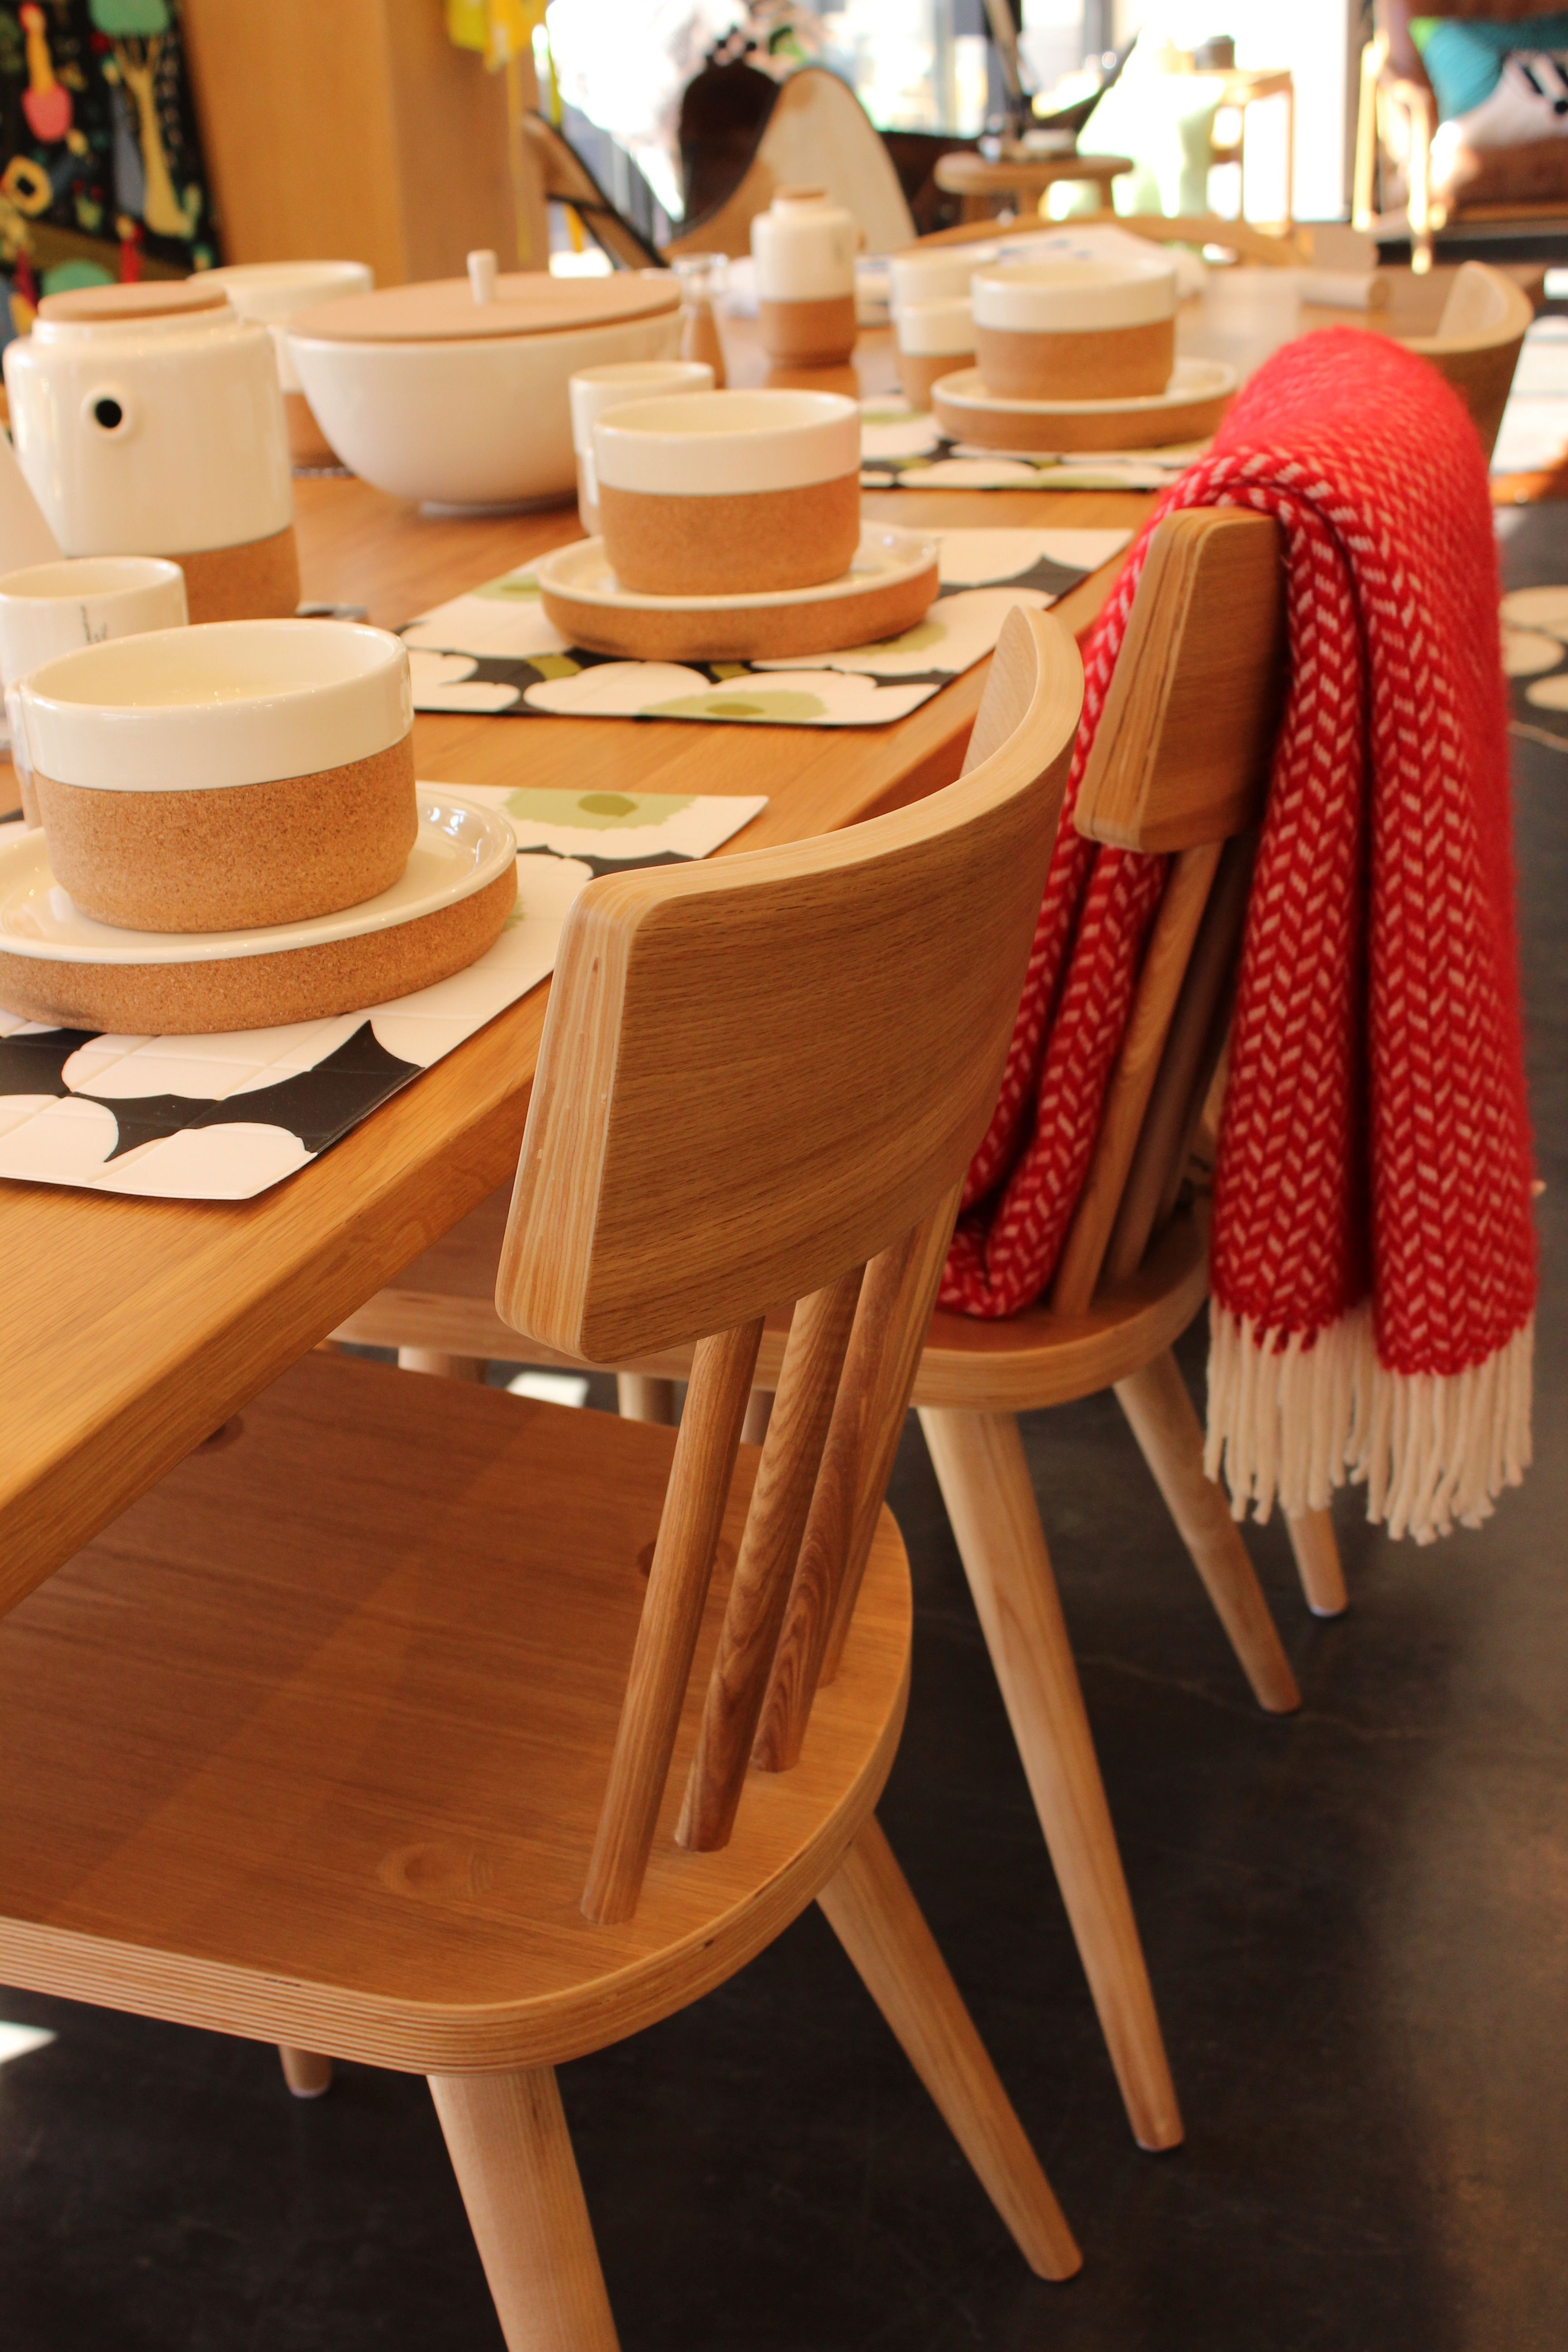 The modern furniture stores 3m extendable dining table and 5 bar dining chairs european oak with some marimekko and cork ceramic tableware